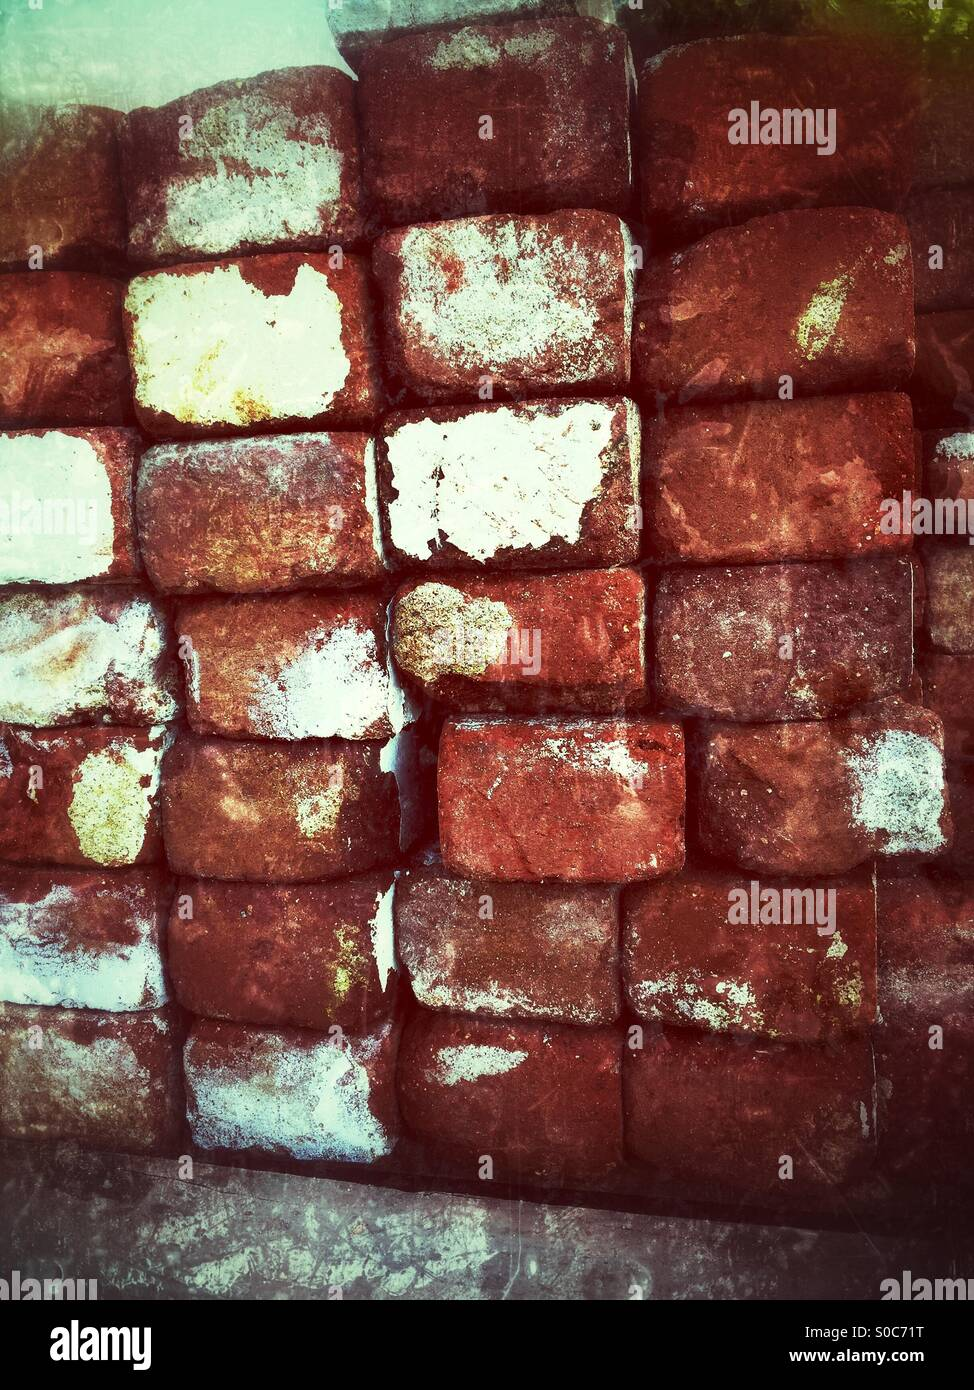 Stacks Of Used Red Bricks For Construction, Walls, Steps, And Walkways - Stock Image